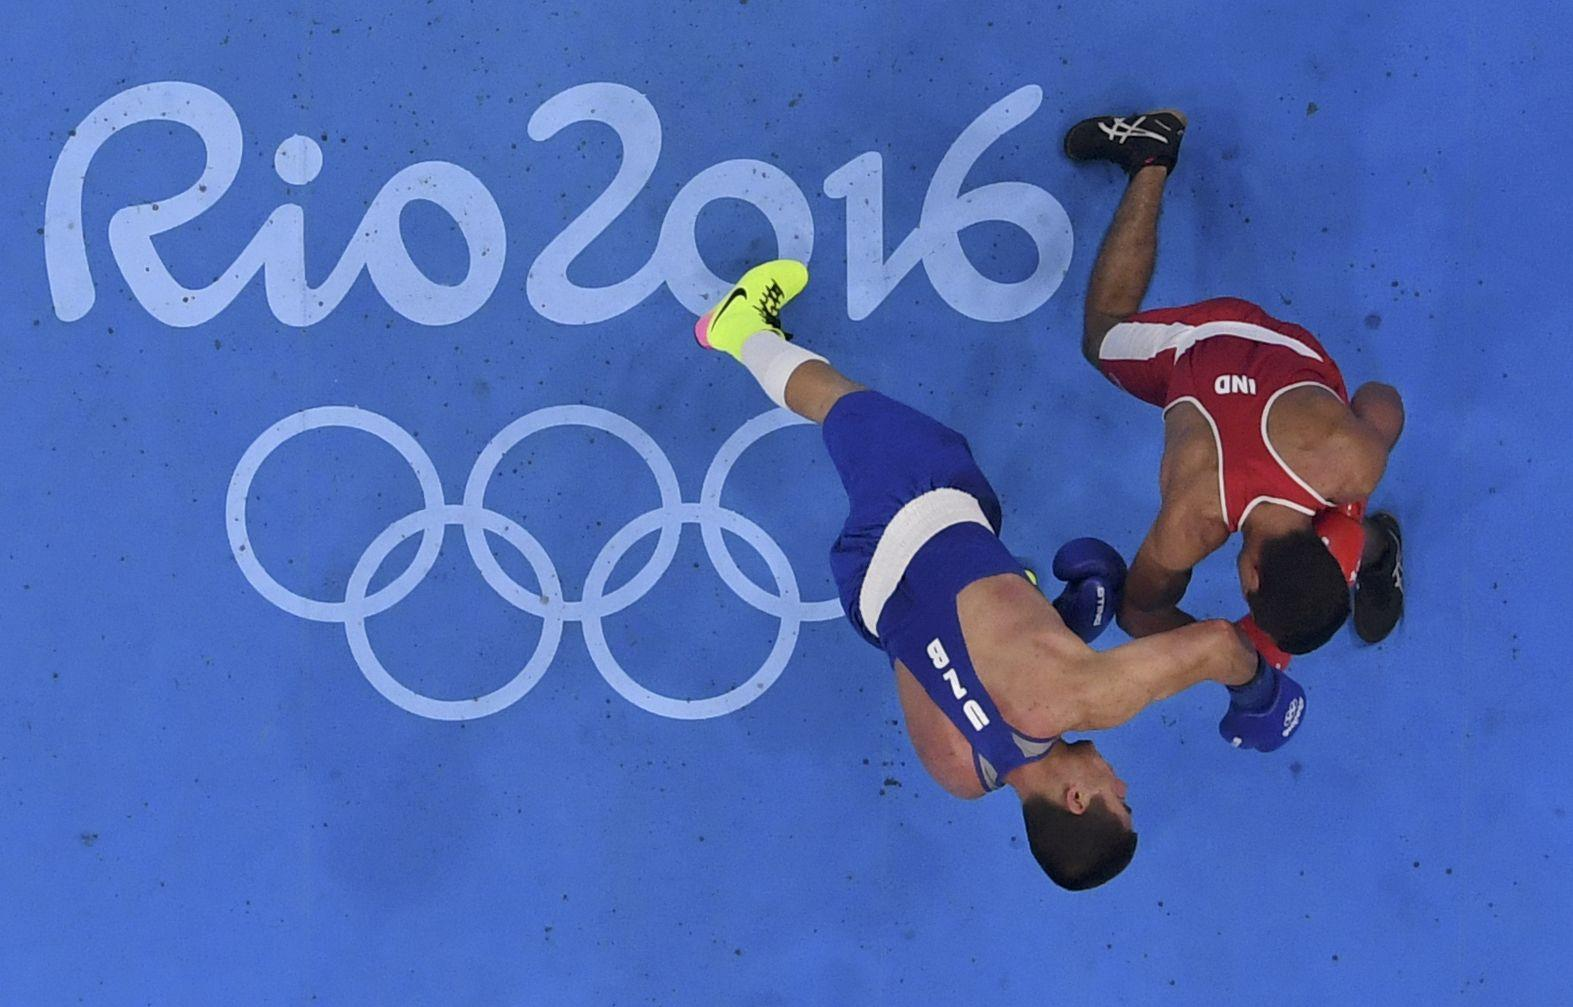 2016 Rio Olympics - Boxing - Quarterfinal - Men's Middle (75kg) Round of 16 Bout 219 - Riocentro - Pavilion 6 - Rio de Janeiro, Brazil - 15/08/2016. Vikas Krishan (IND) of India and Bektemir Melikuziev (UZB) of Uzbekistan compete. REUTERS/Pool FOR EDITORIAL USE ONLY. NOT FOR SALE FOR MARKETING OR ADVERTISING CAMPAIGNS.